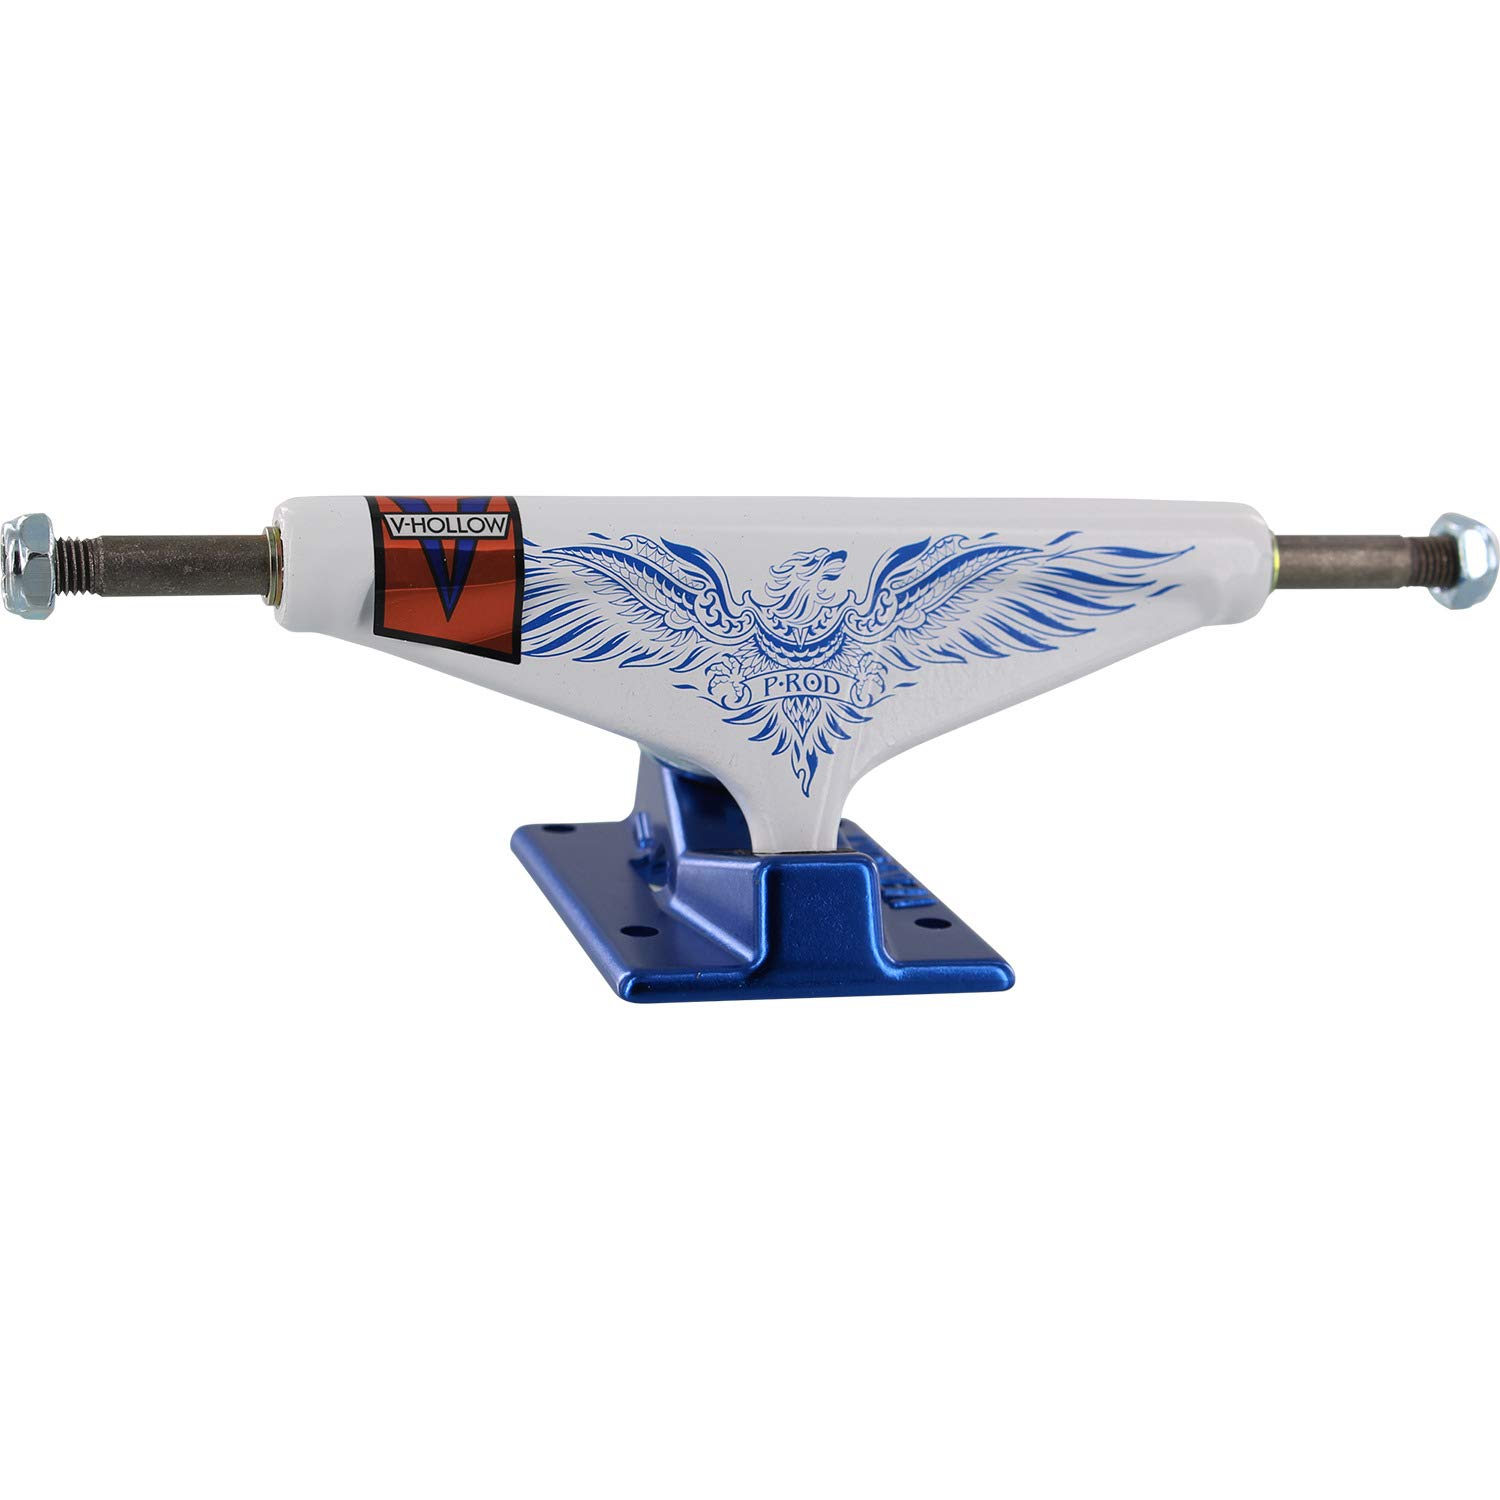 Venture Trucks Paul Rodriguez P-Rod Feniks LTD Pro V-Hollows High White//Blue Skateboard Trucks 5.25 Hanger 8.0 Axle Set of 2